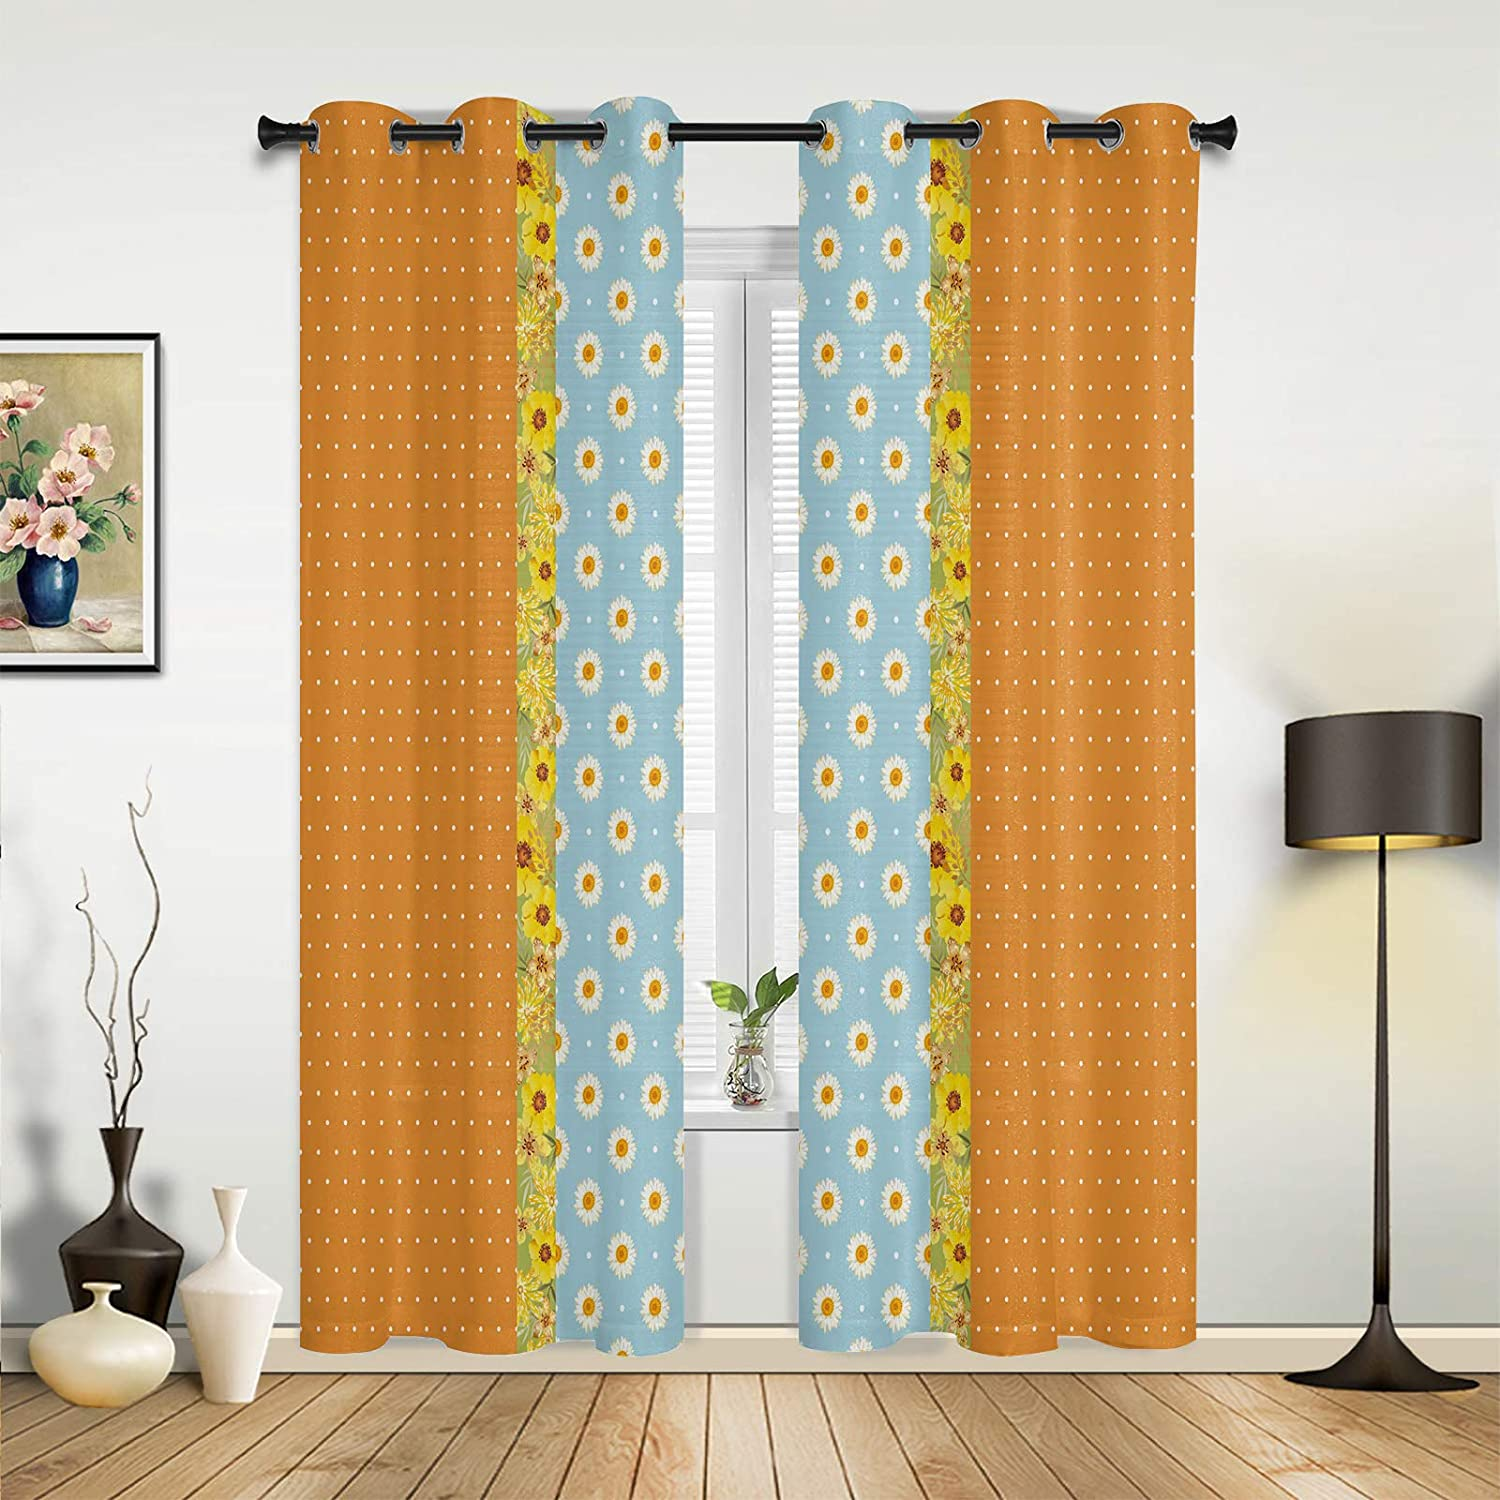 Beauty Decor Window Sheer Curtains Fresh online shop Room Directly managed store Bedroom for Living